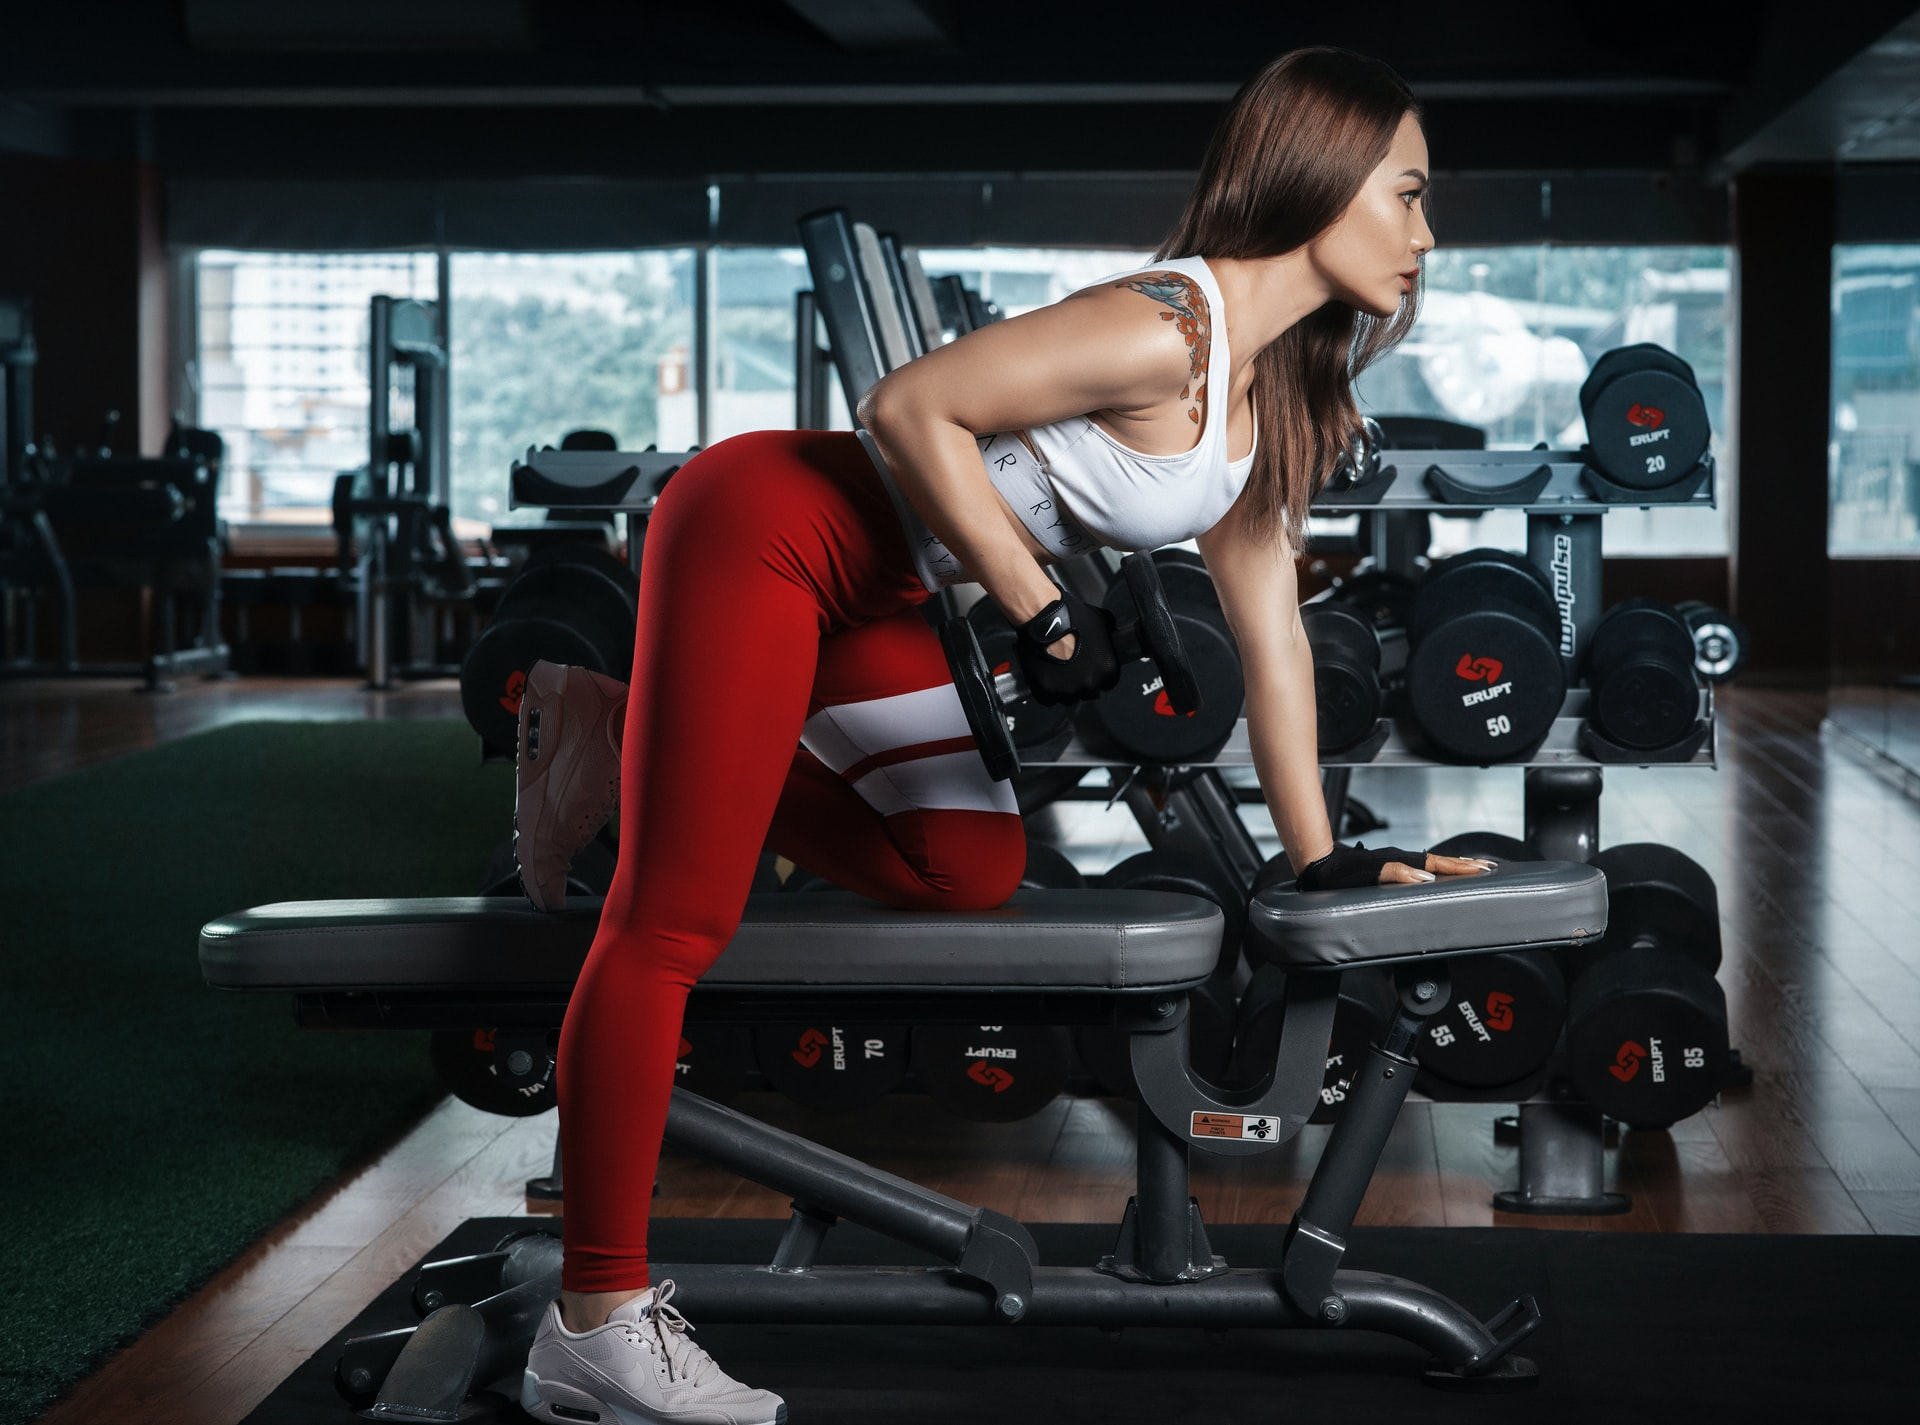 Single Arm Dumbbell Row - Step by Step Guide